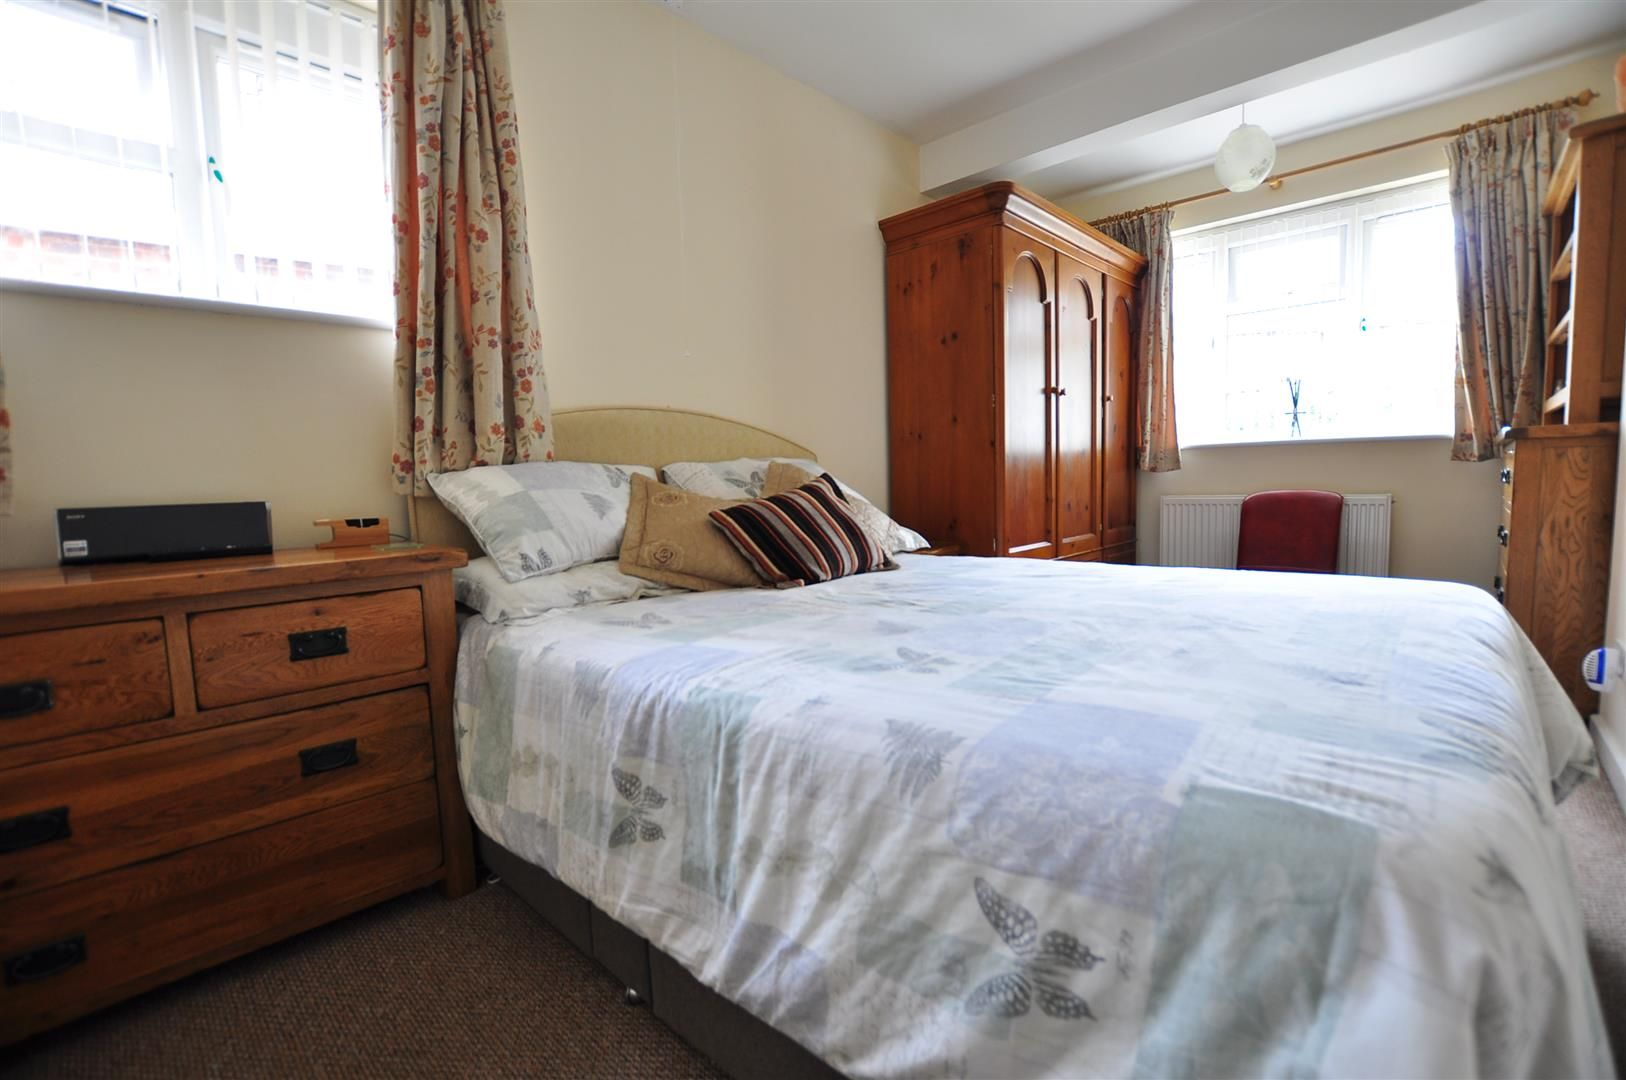 3 bed semi-detached for sale in Lower Gornal 9